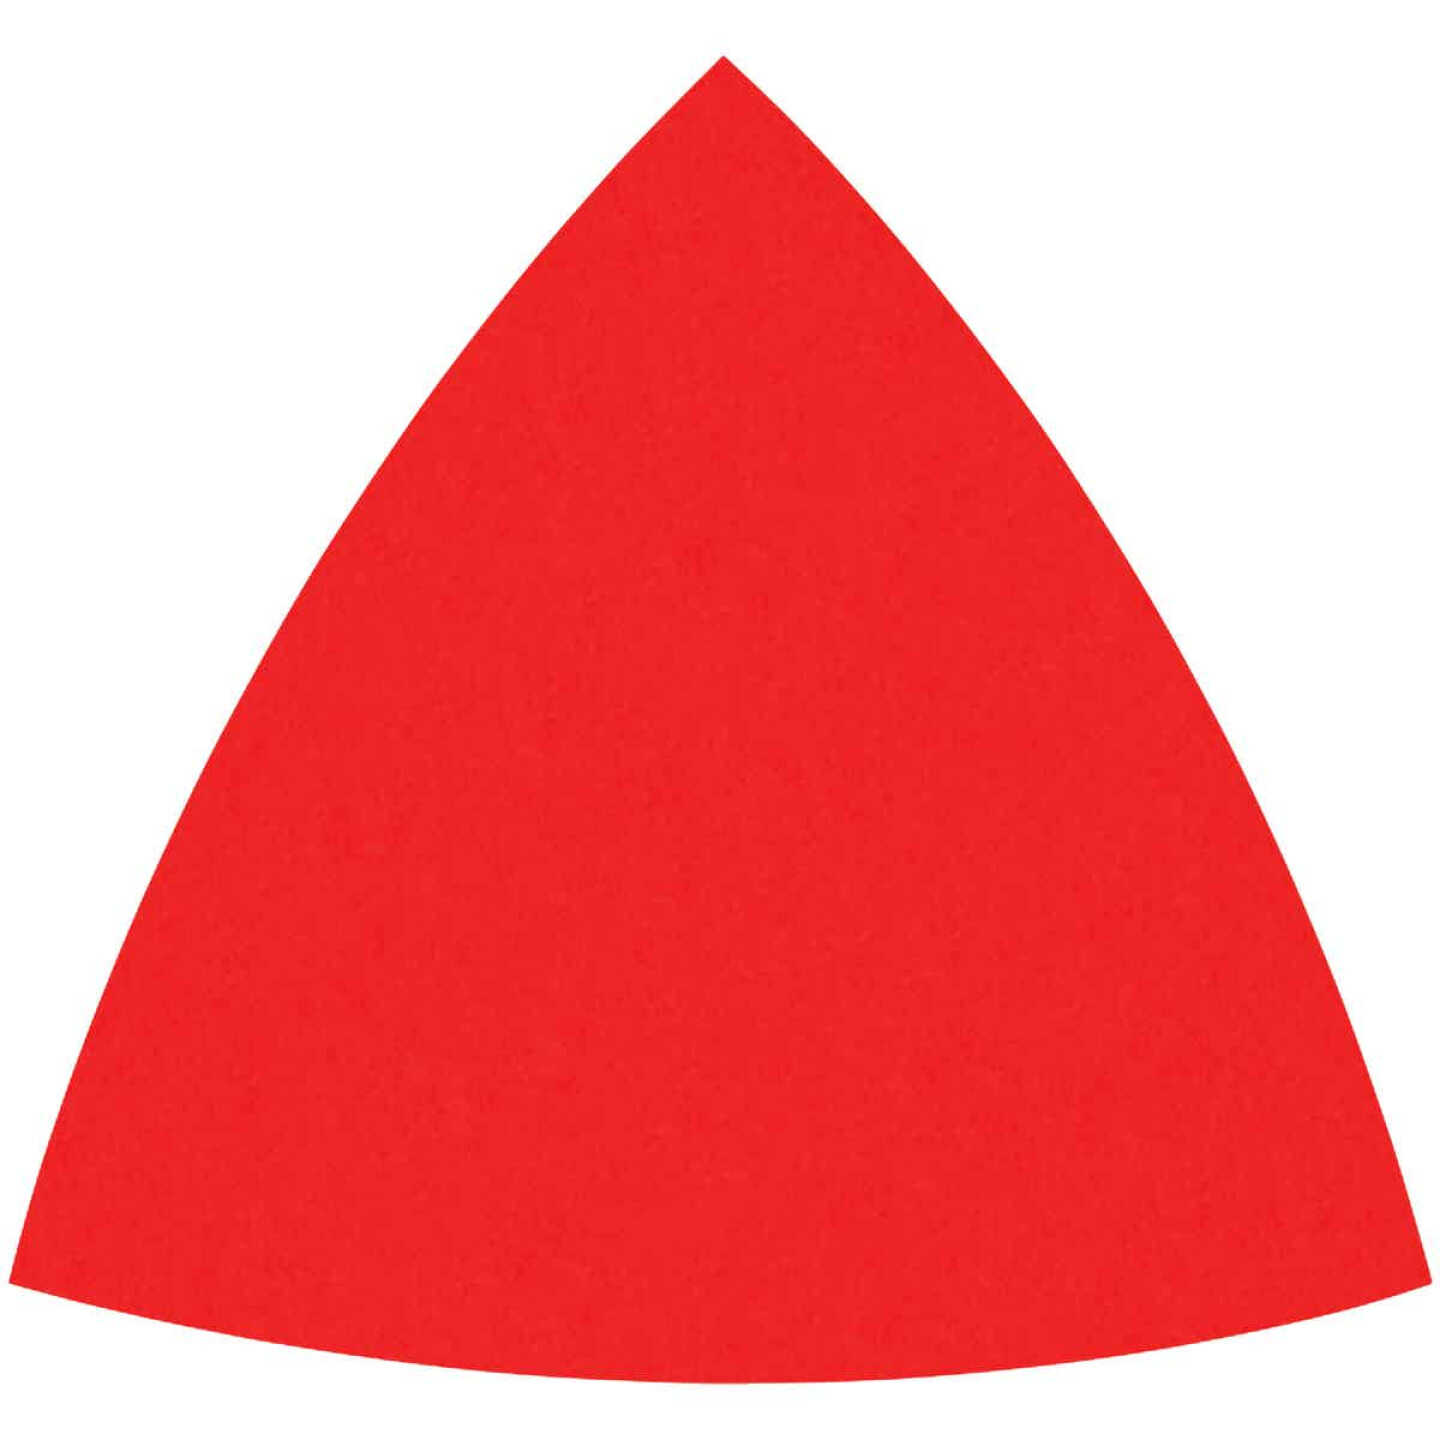 Diablo 80-Grit (Coarse) 3-3/4 In.Oscillating Detail Triangle Sanding Sheets (10-Pack) Image 1